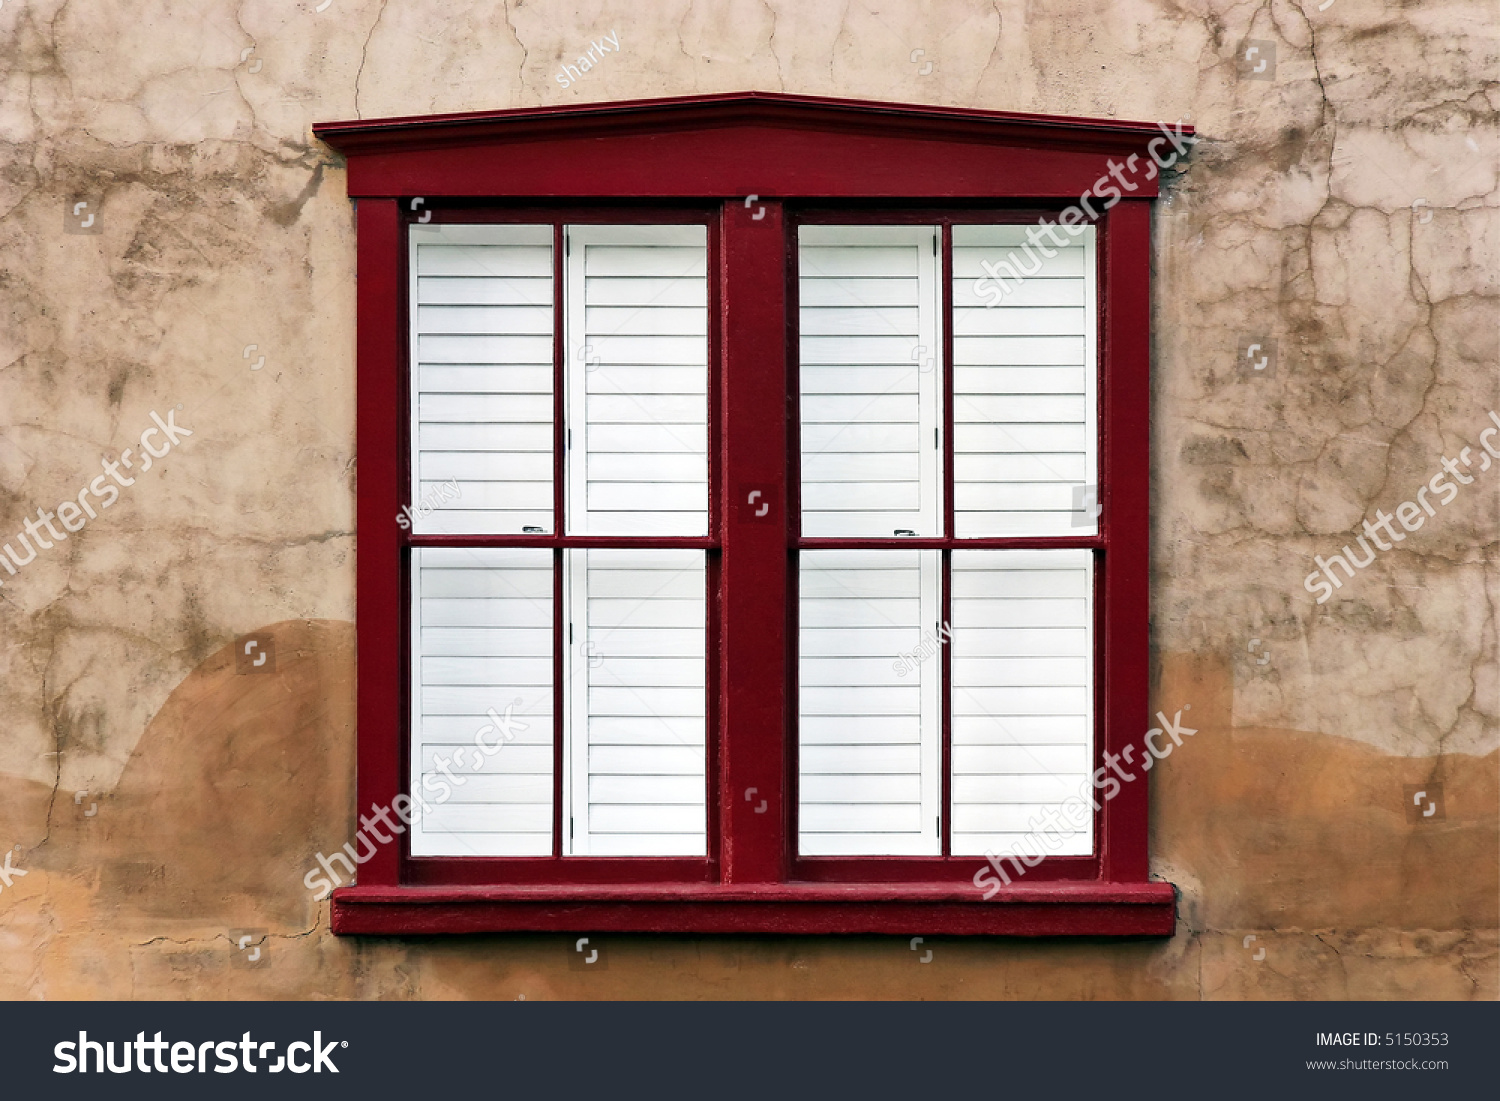 Brown Stucco Wall Modern Red Wooden Stock Photo (100% Legal ...